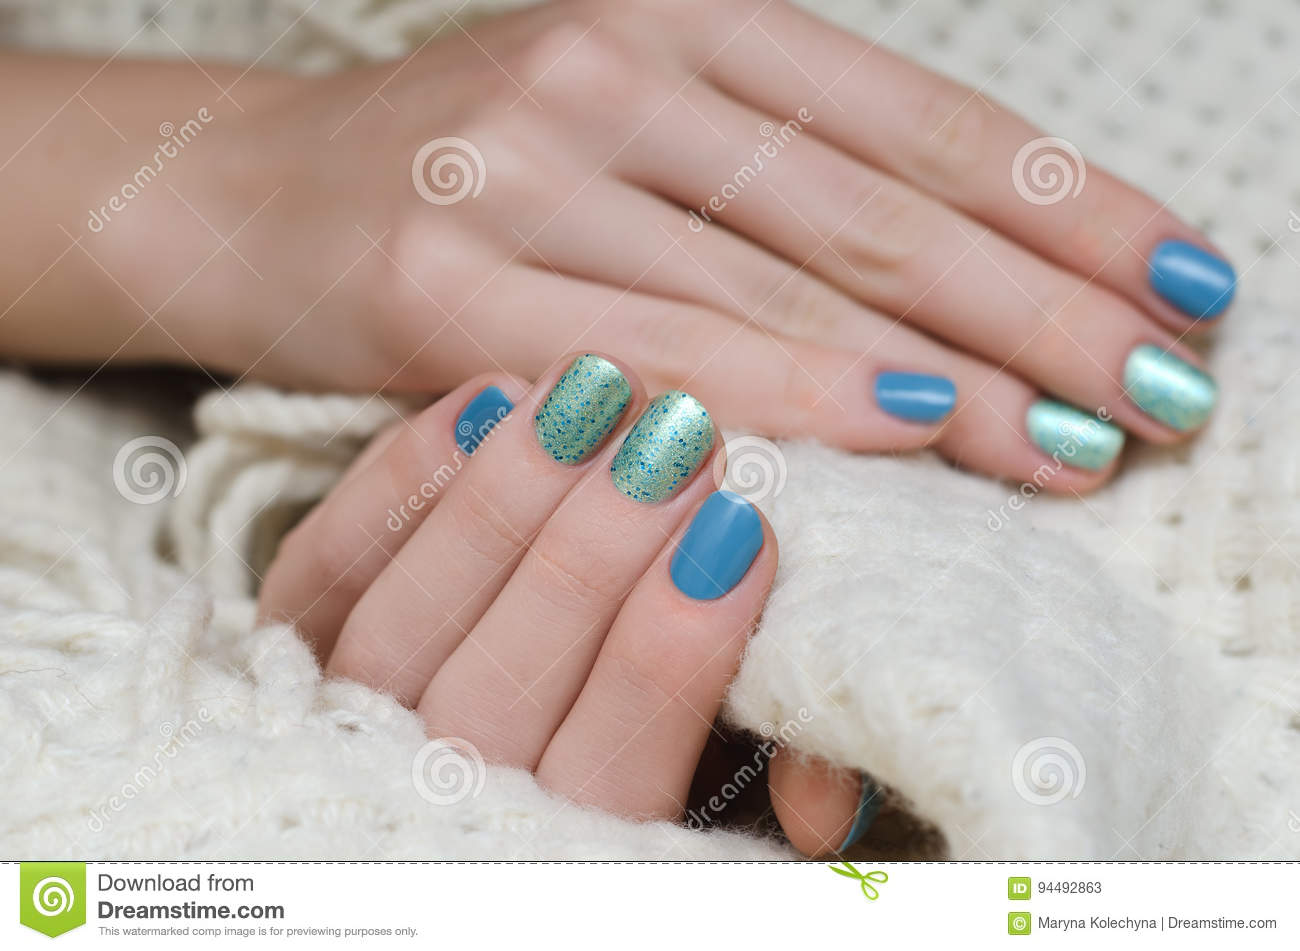 Beautiful Female Hand With Blue And Green Glitter Nail Design Stock